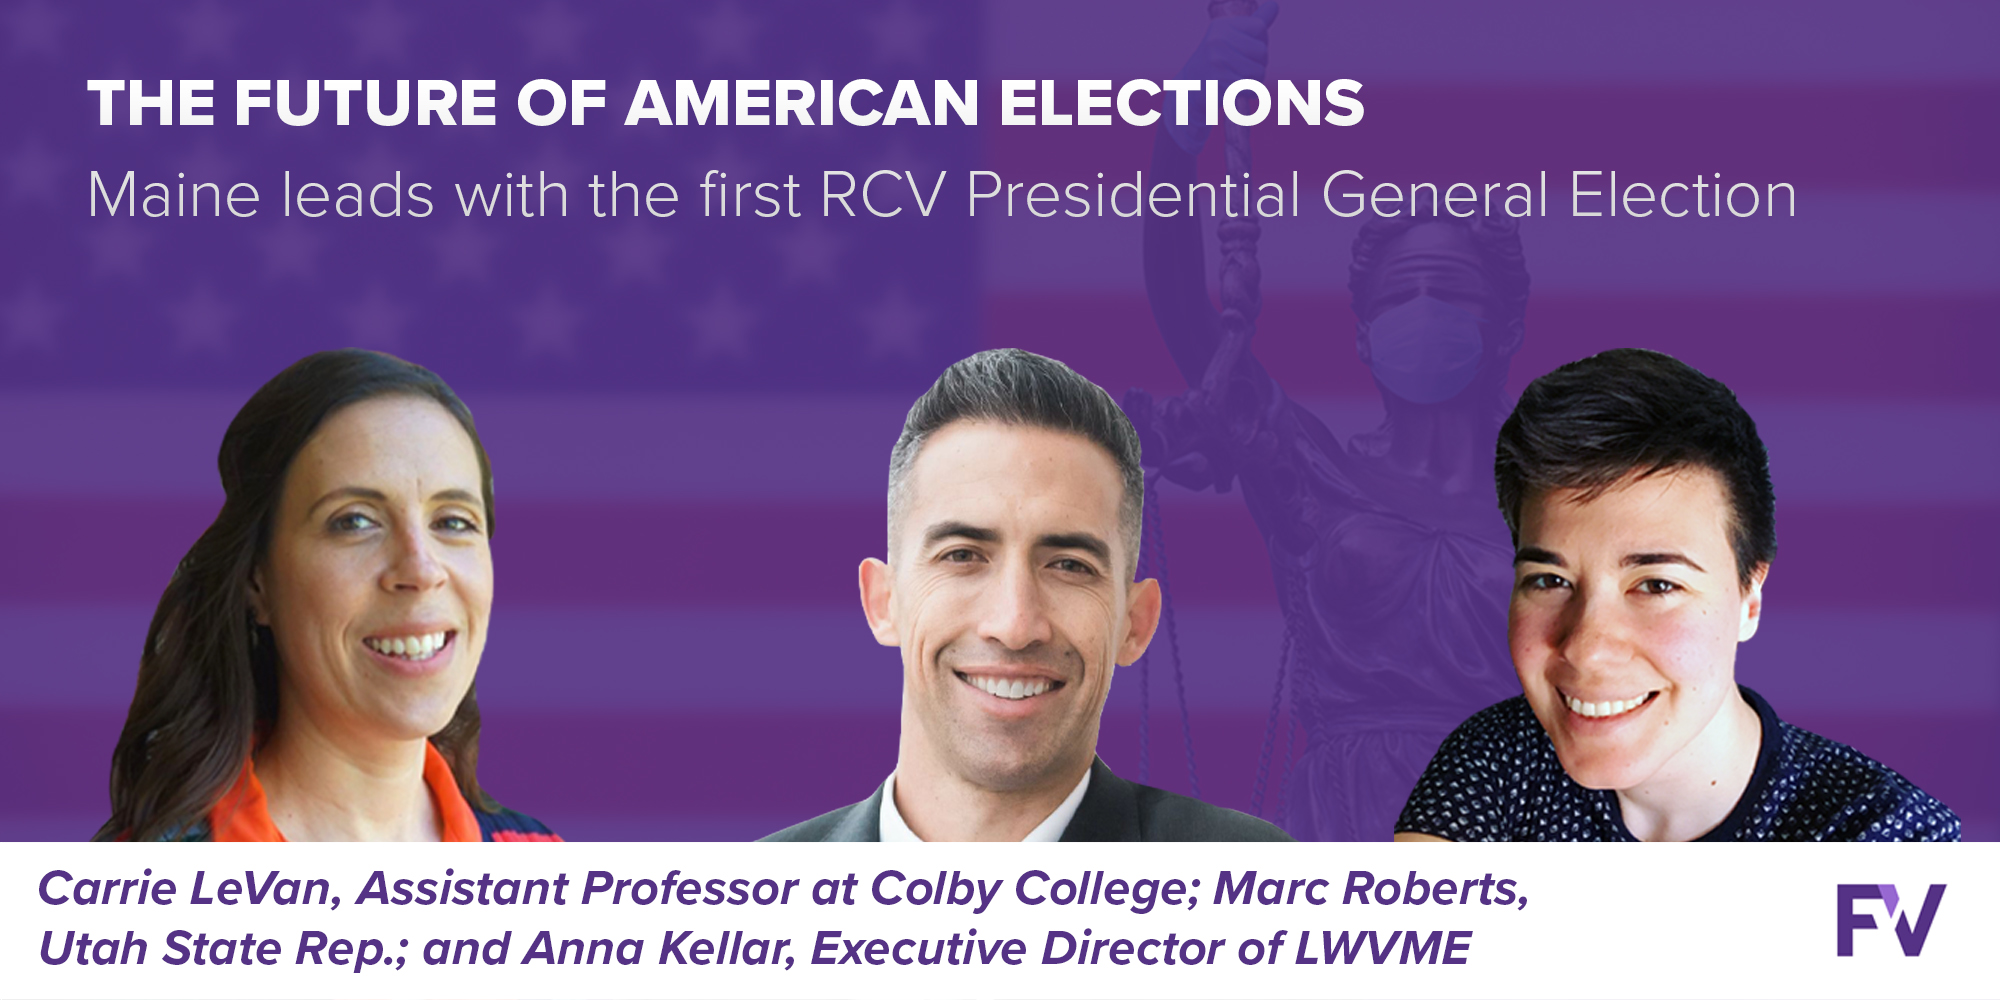 FairVote Webinar Rewind: Maine leads with the first RCV Presidential General Election